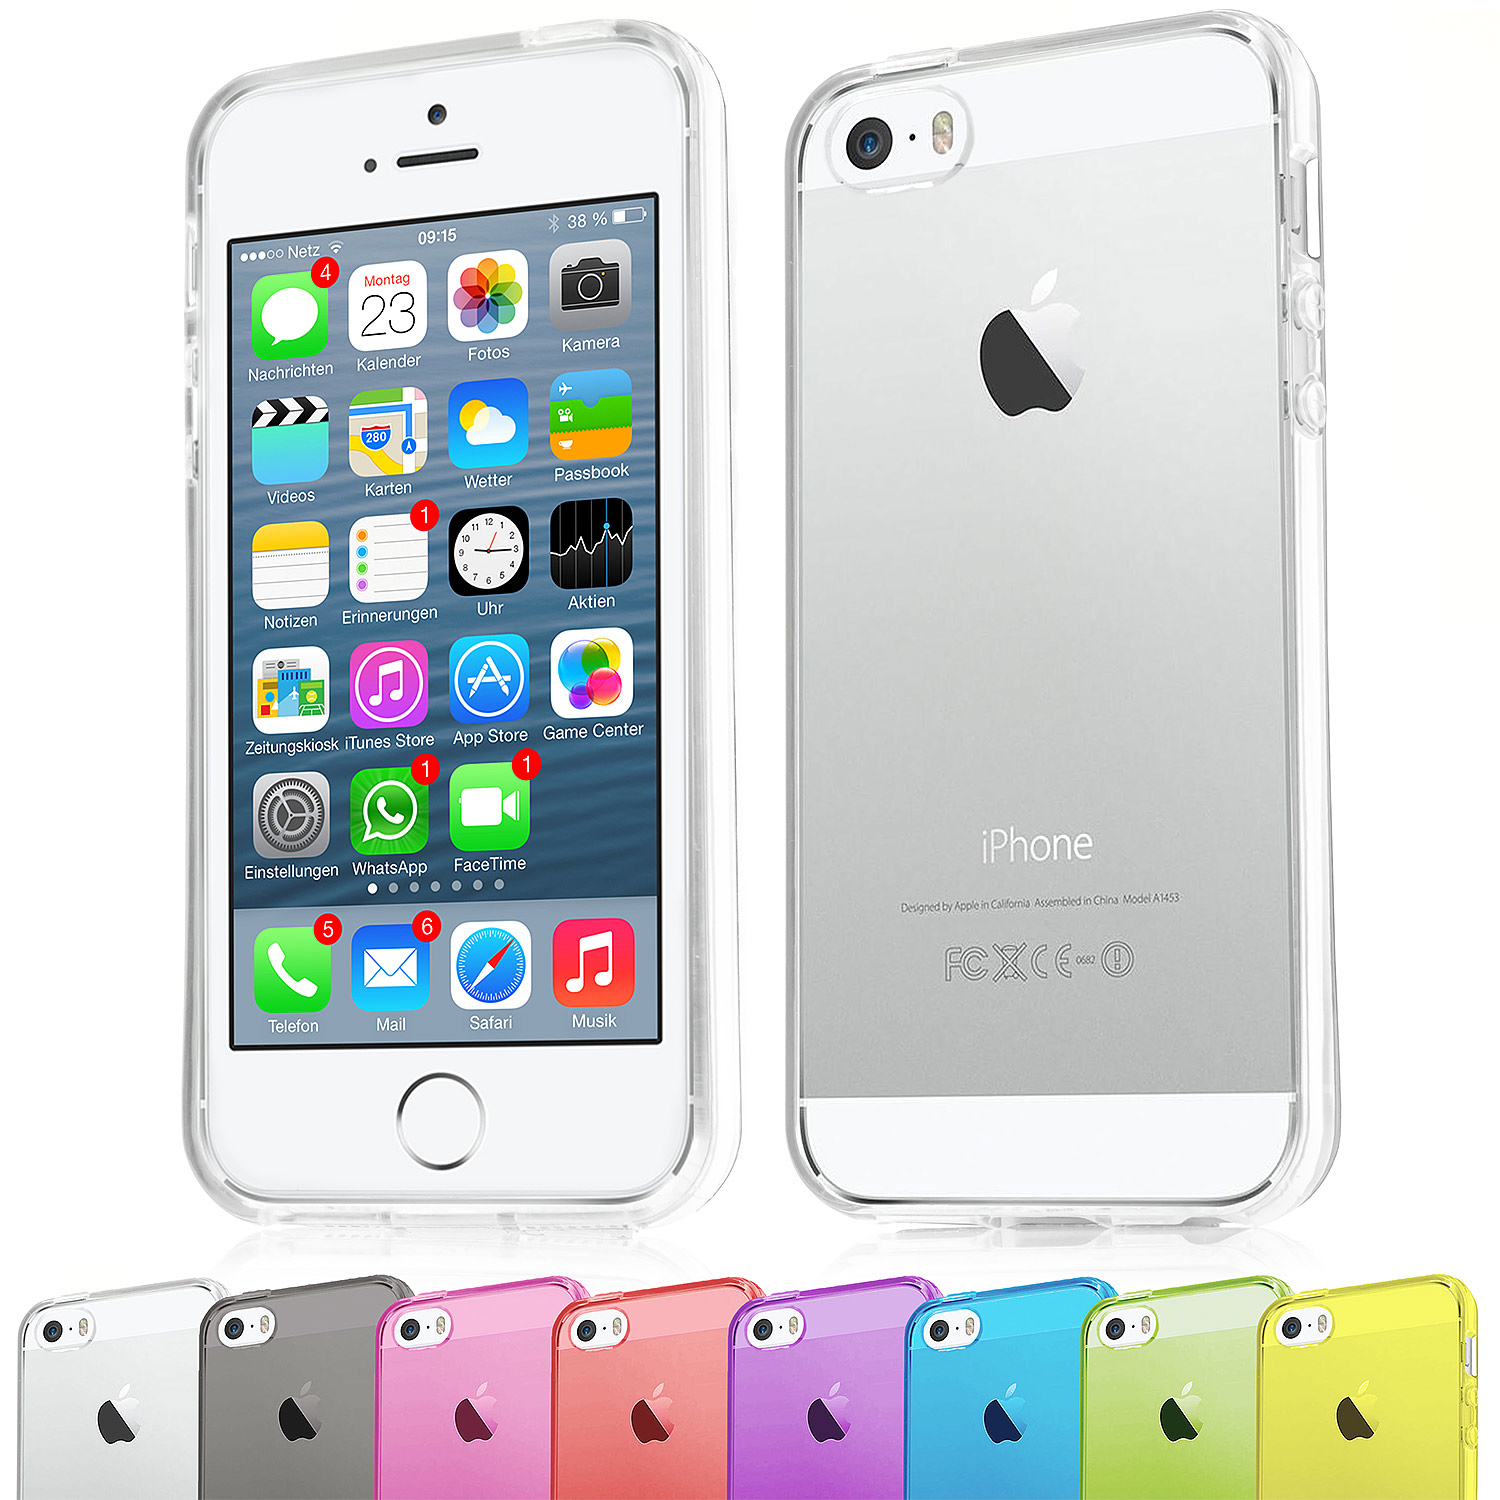 Apple-iPhone-4-4s-5-5s-TPU-Silikon-Schutz-Huelle-Bumper-Crystal-Case-Handy-Tasche